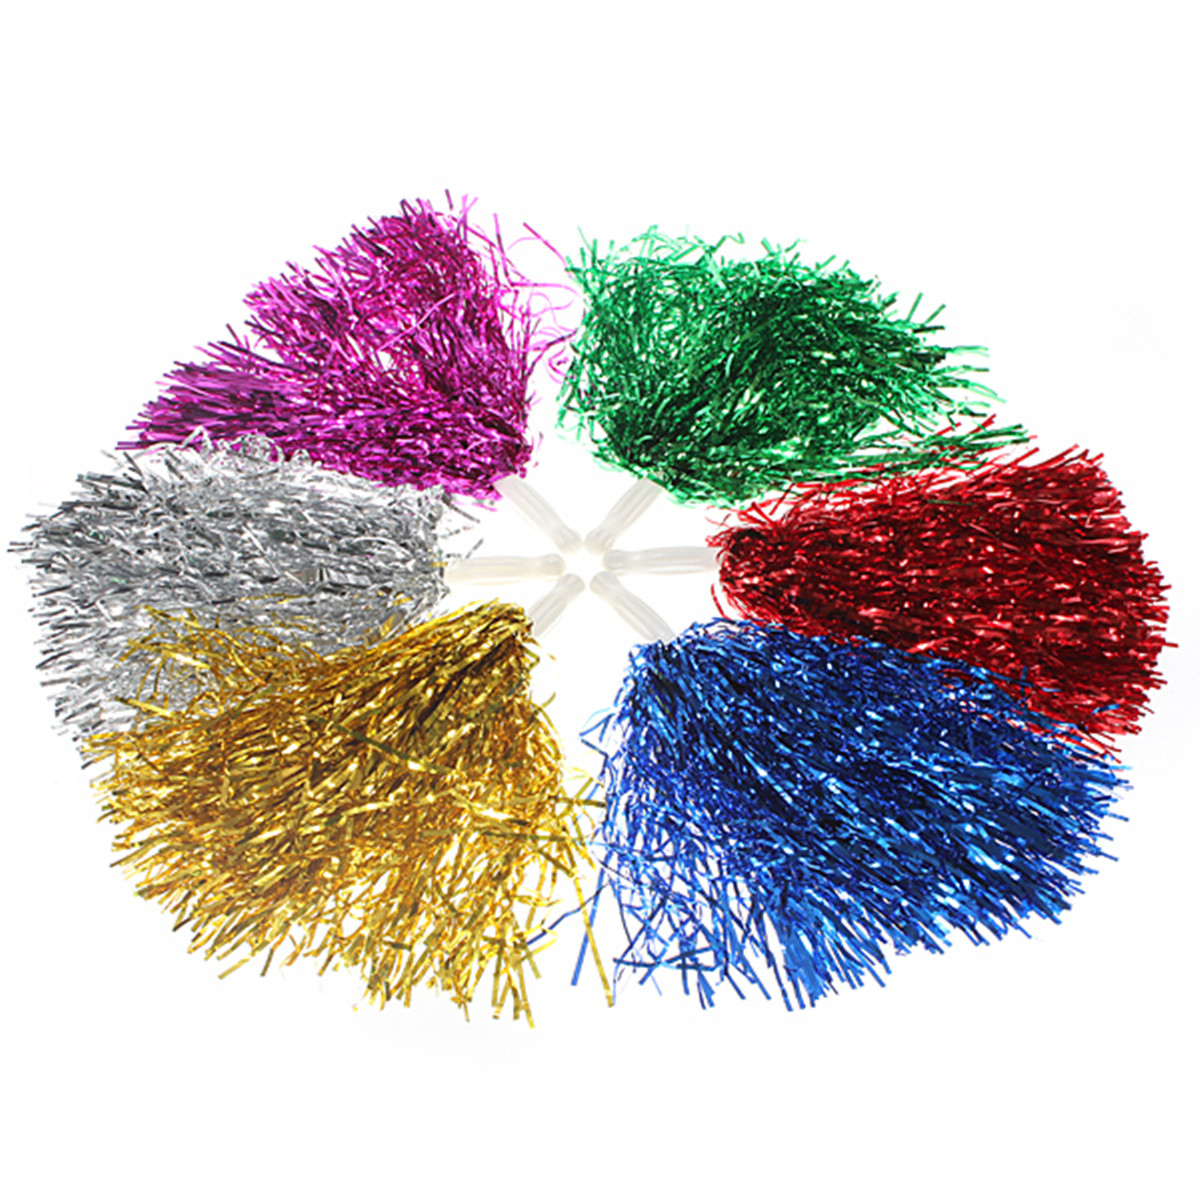 1 Pair Girls Cheerleader Pompom Cheerleading Cheer US Dance Part